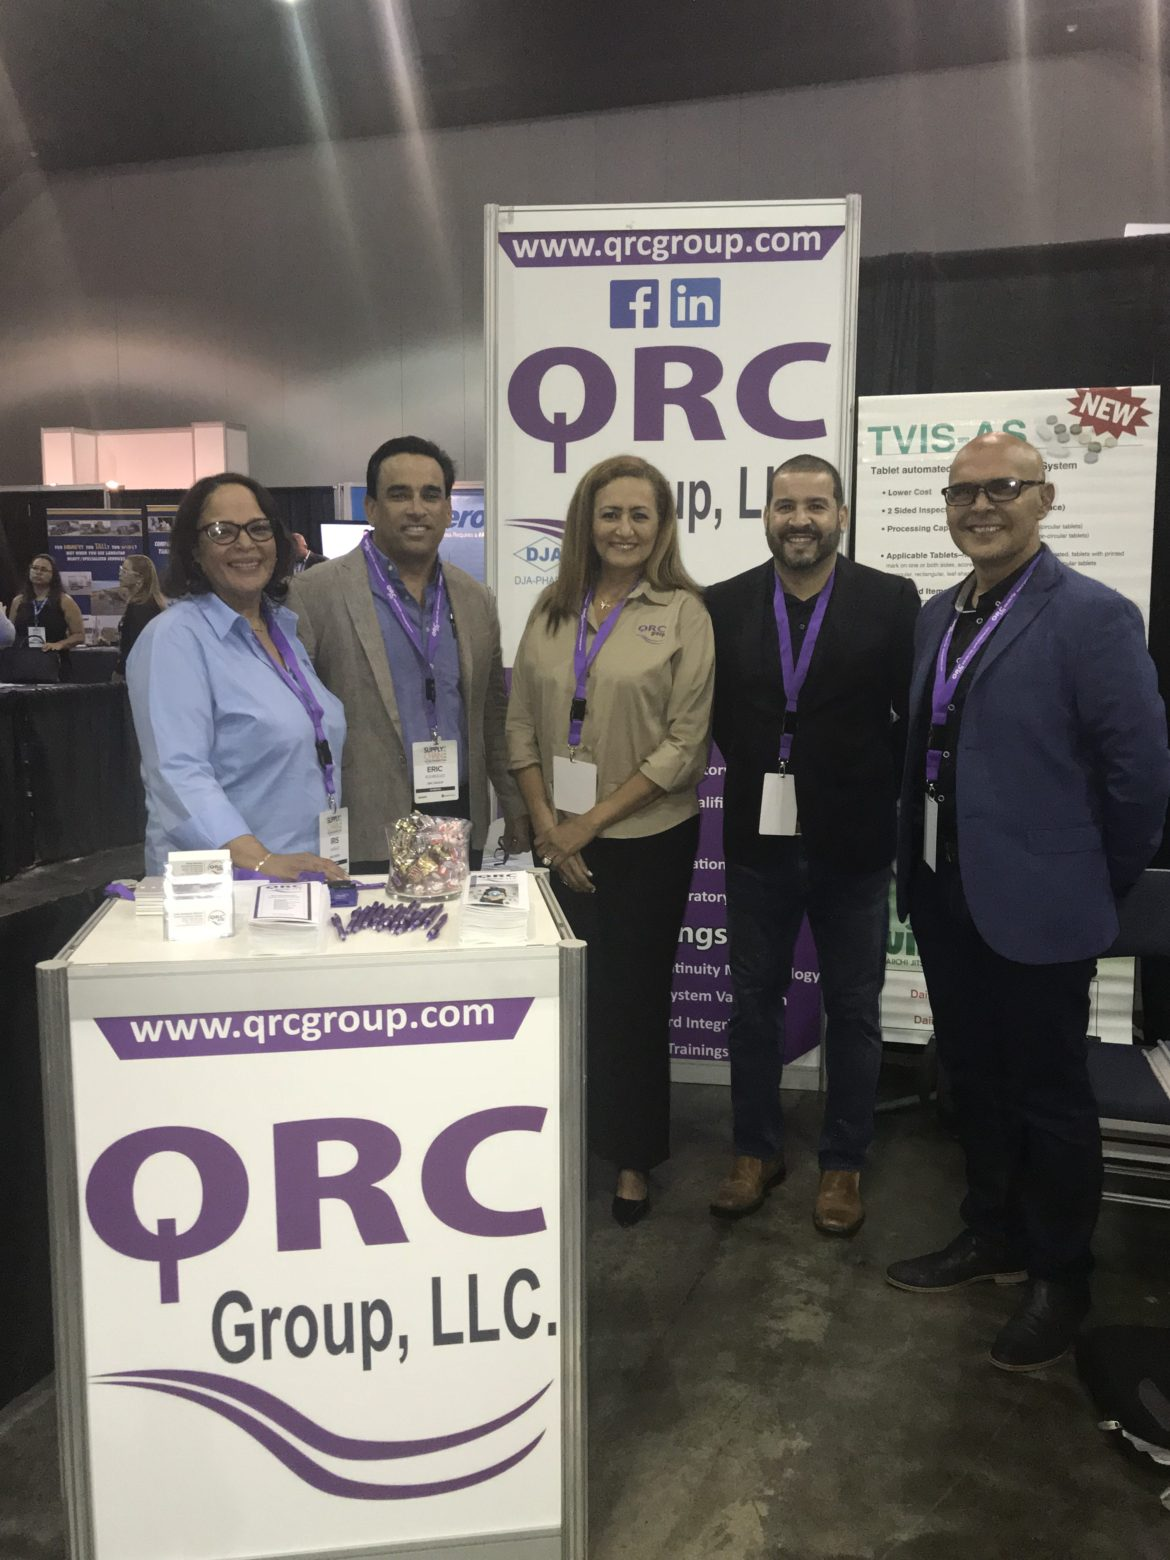 Supply Chain Expo 2018 QRC Group participation